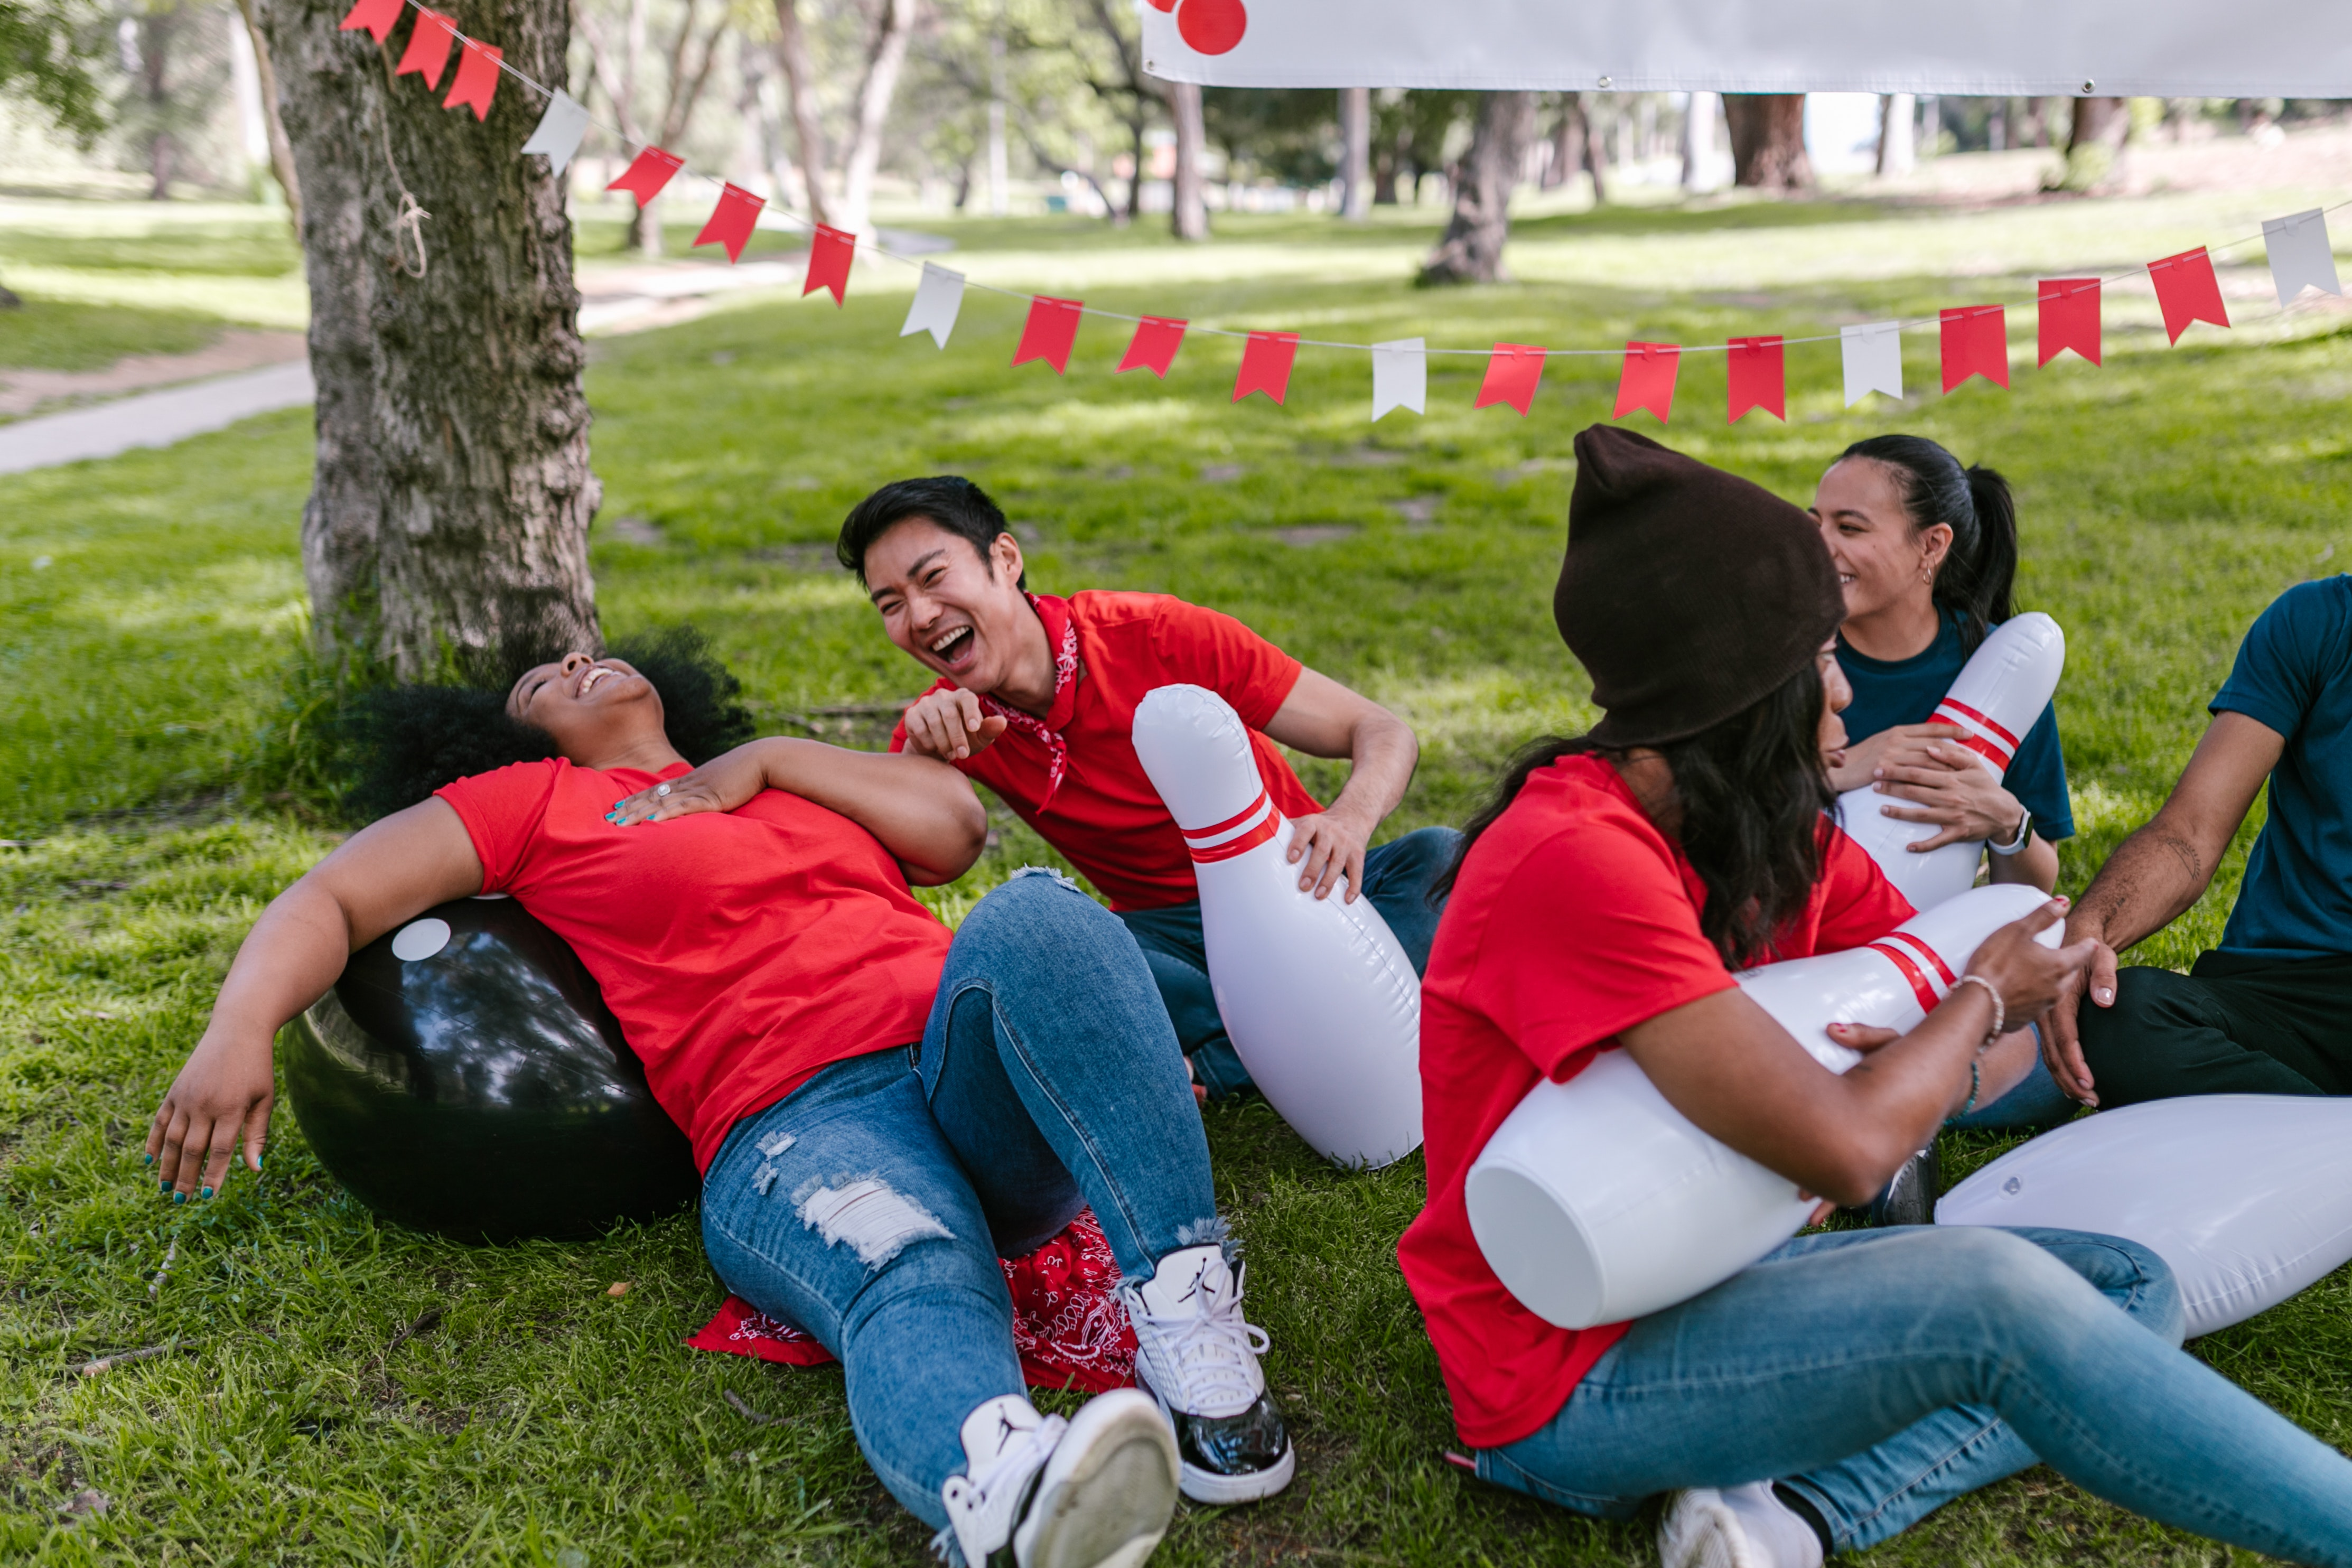 A group of people sitting on the grass laughing.